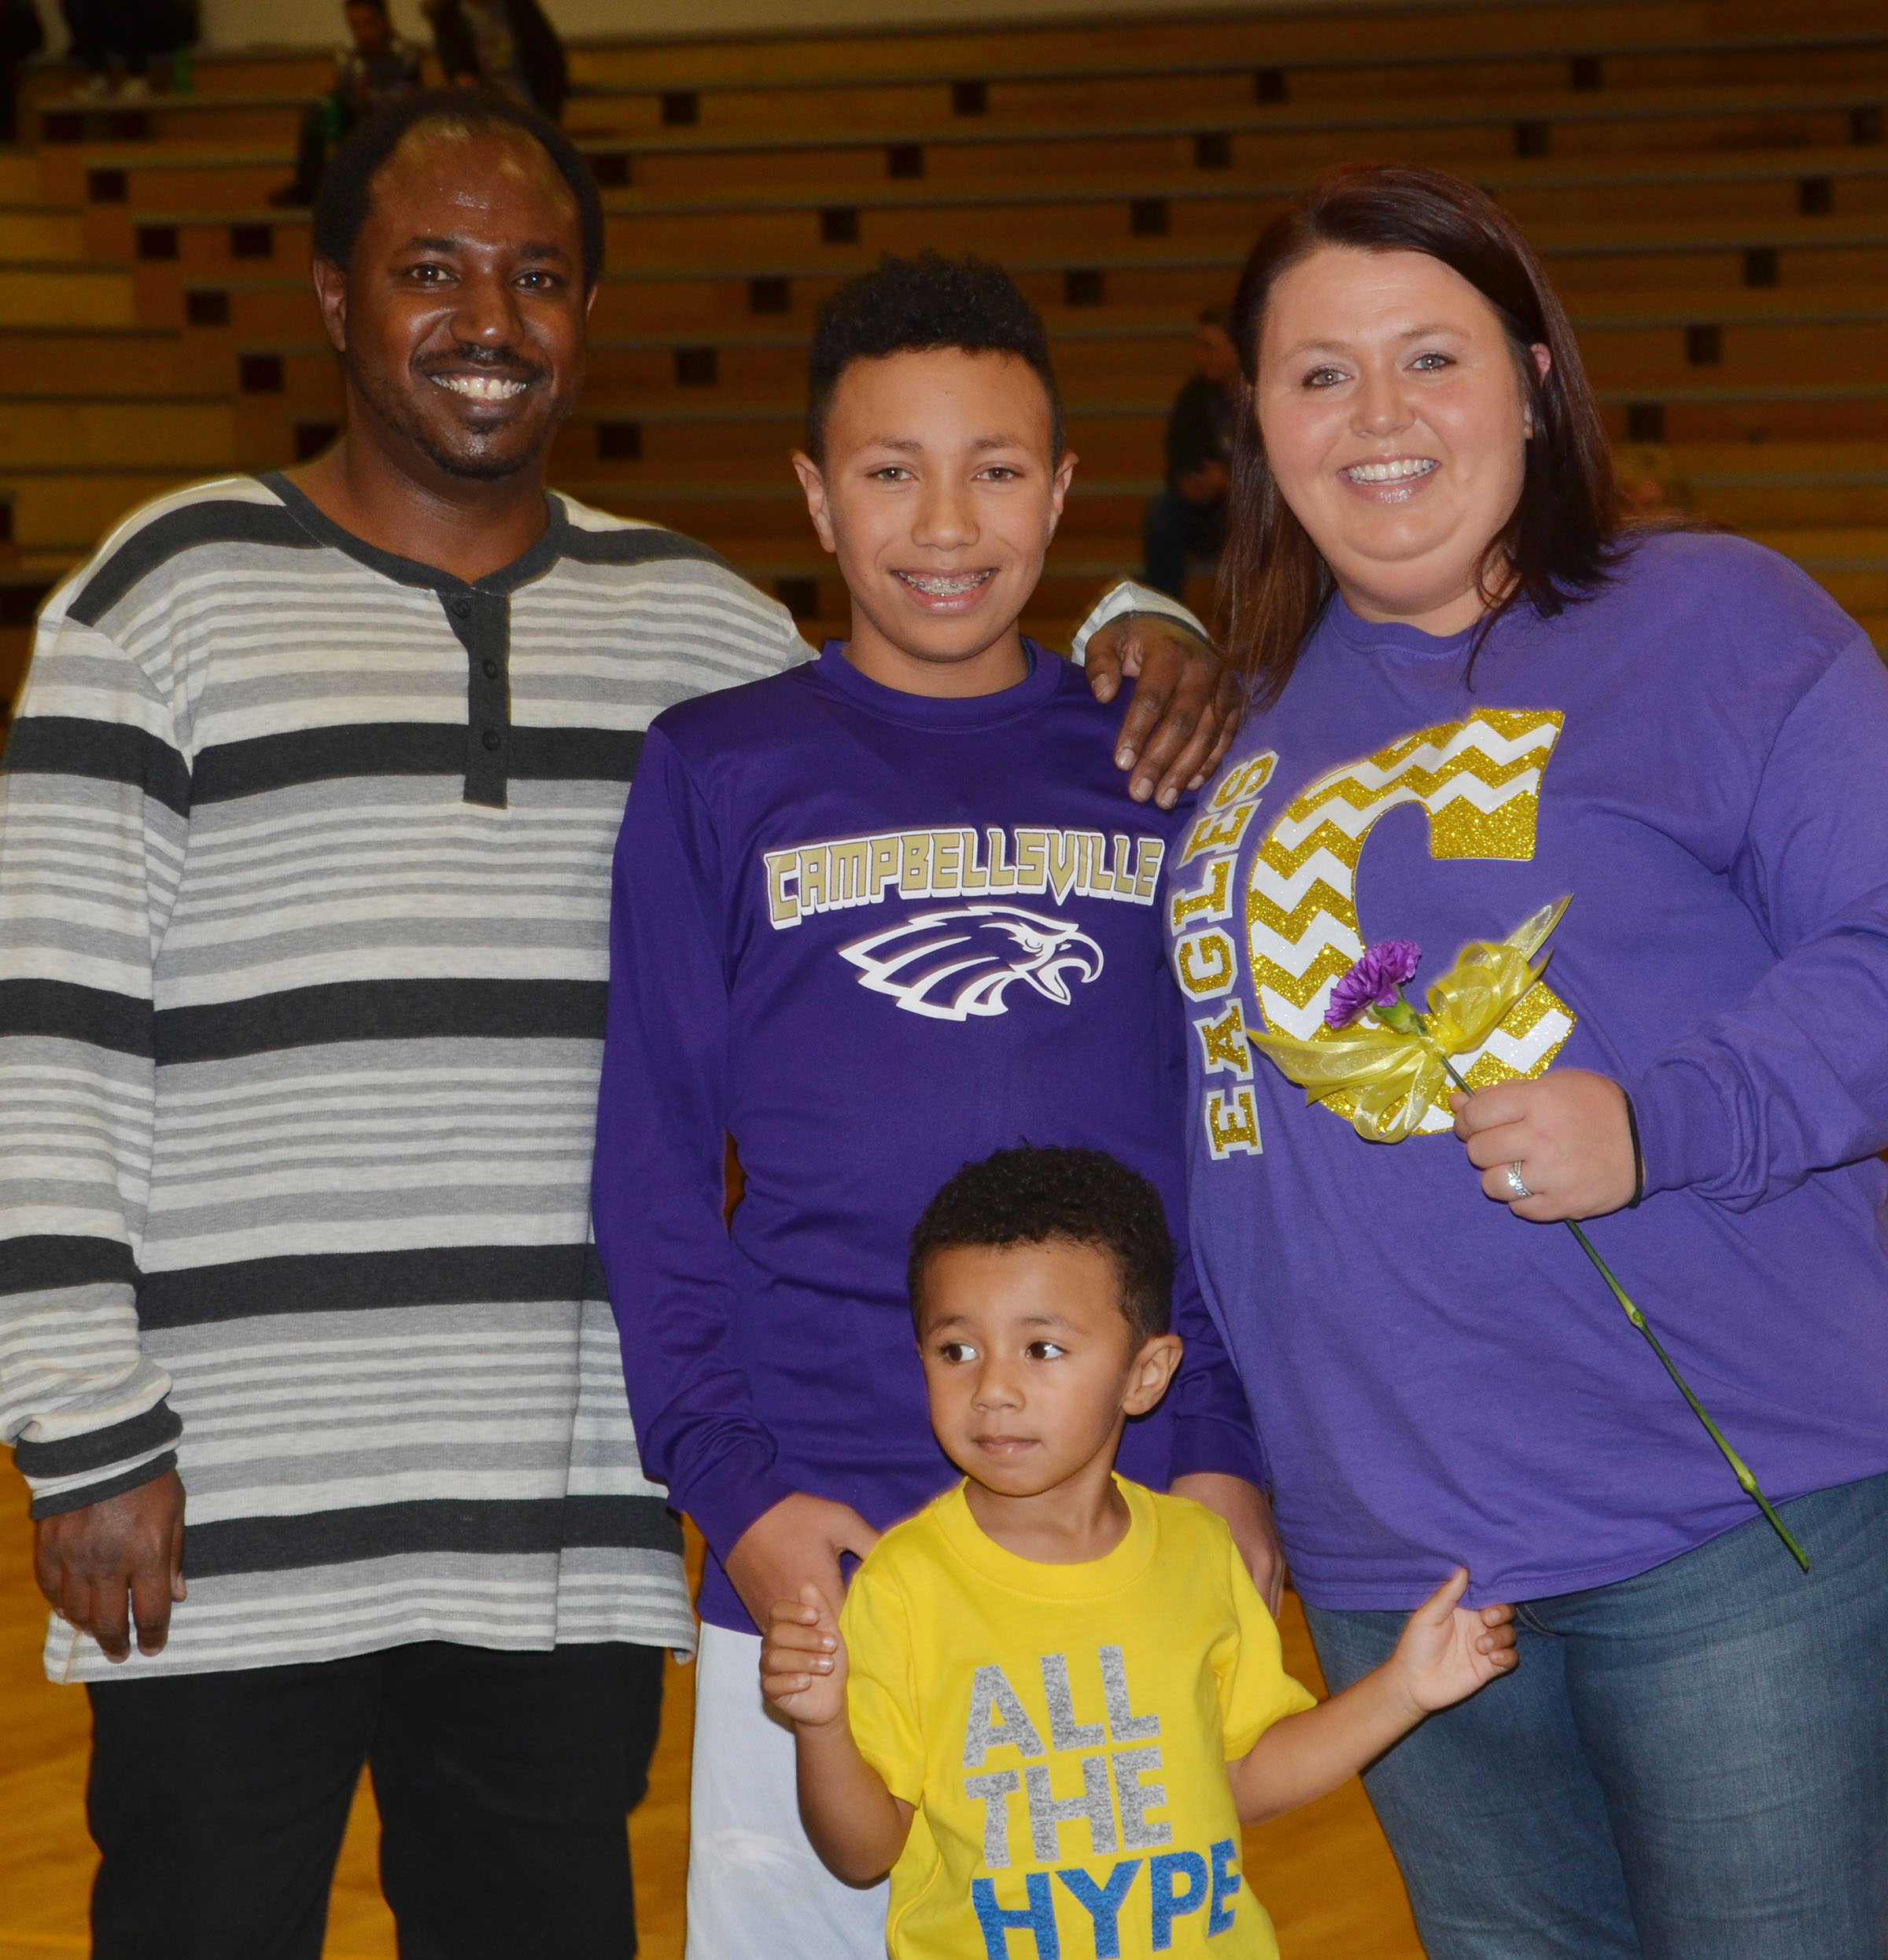 CMS eighth-grader Jastyn Shively is honored. He is pictured with his parents, LaRee and Jansen, and his brother, Jayvian.